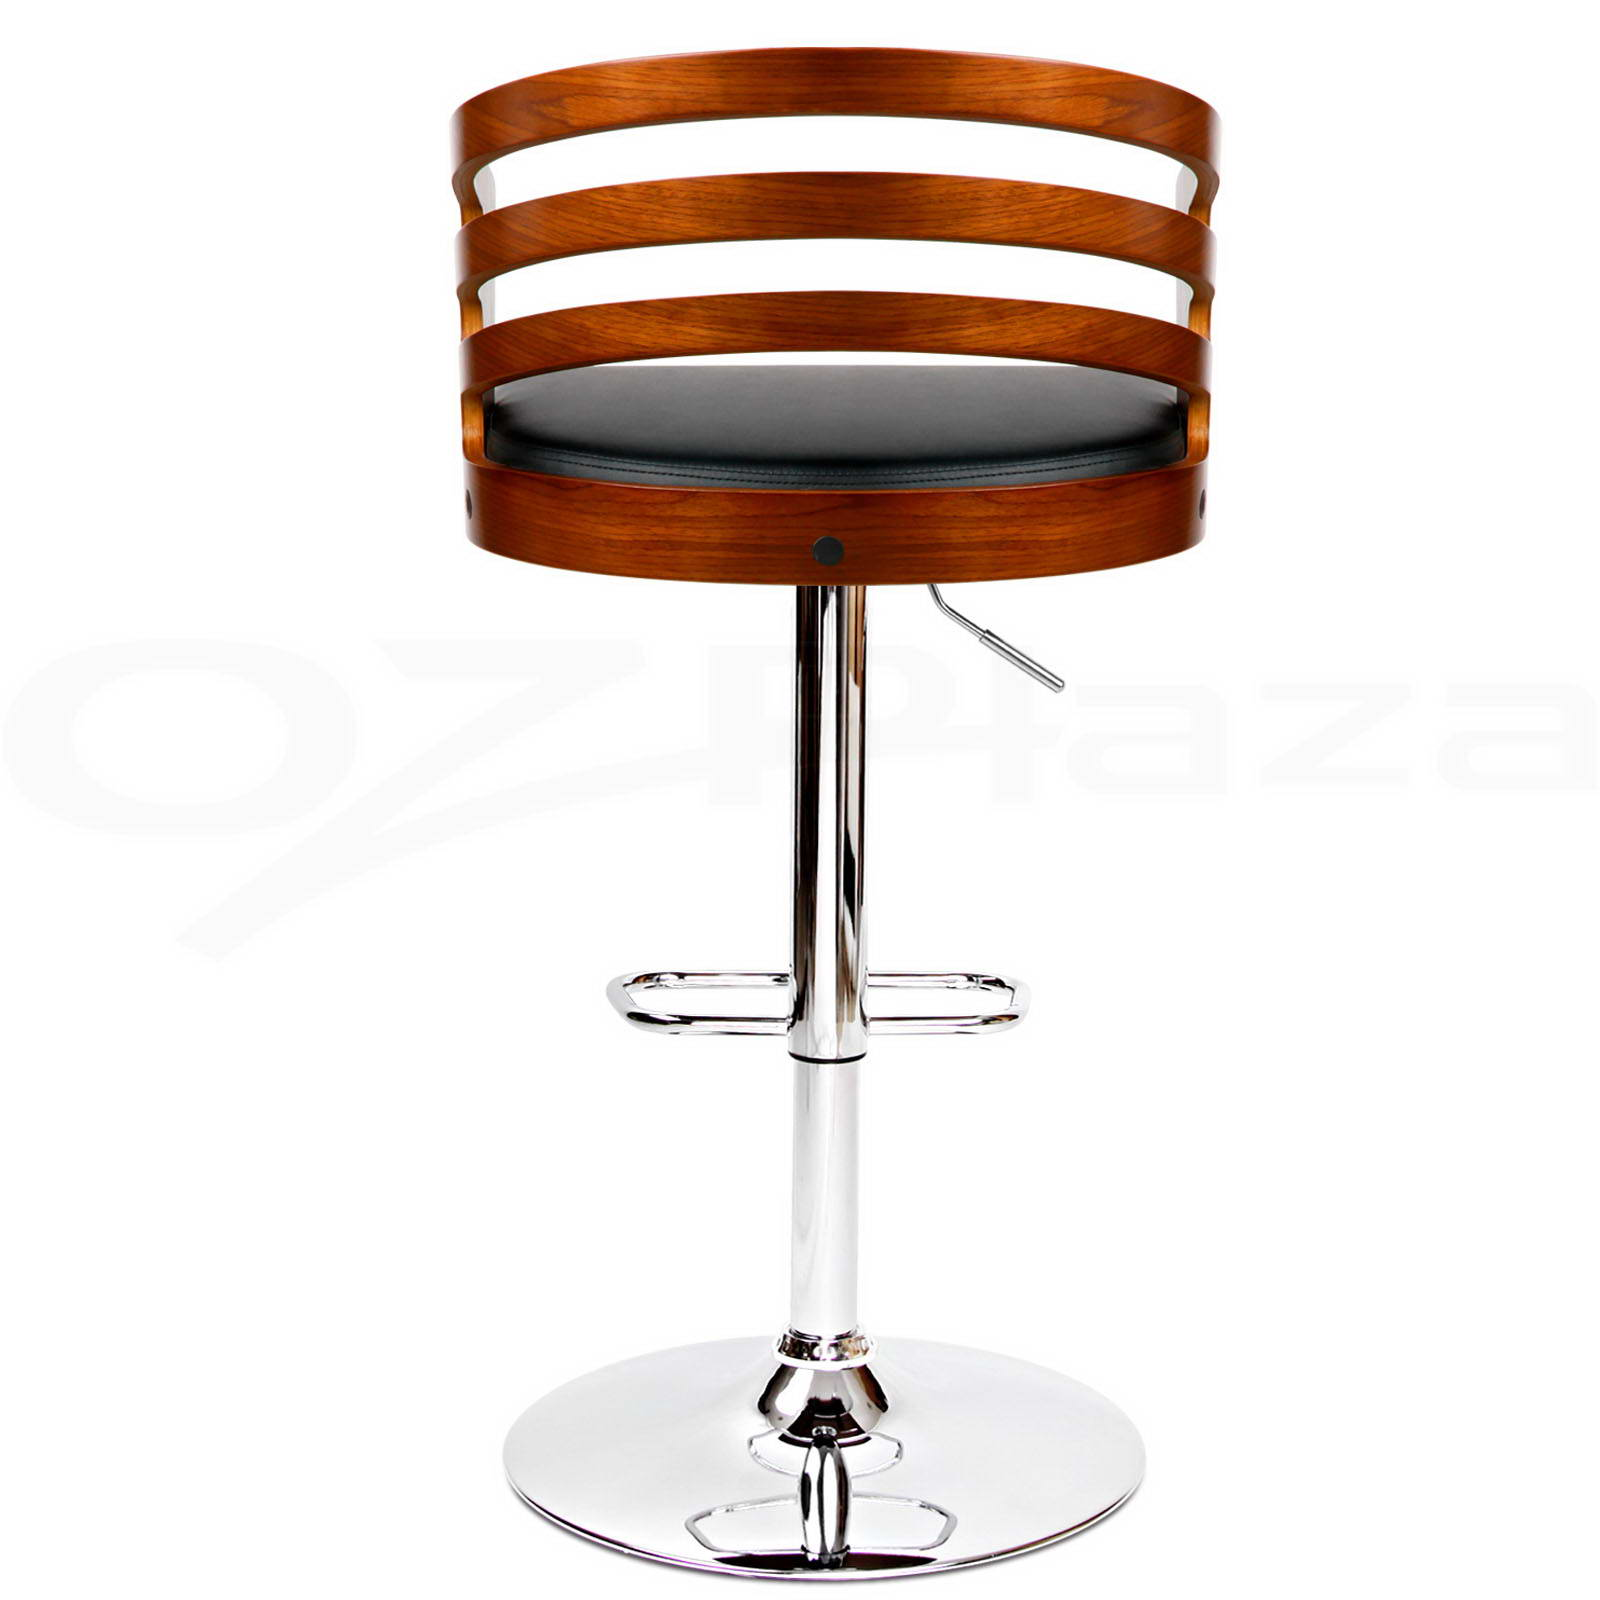 4x wooden bar stool kitchen chair dining black white pu